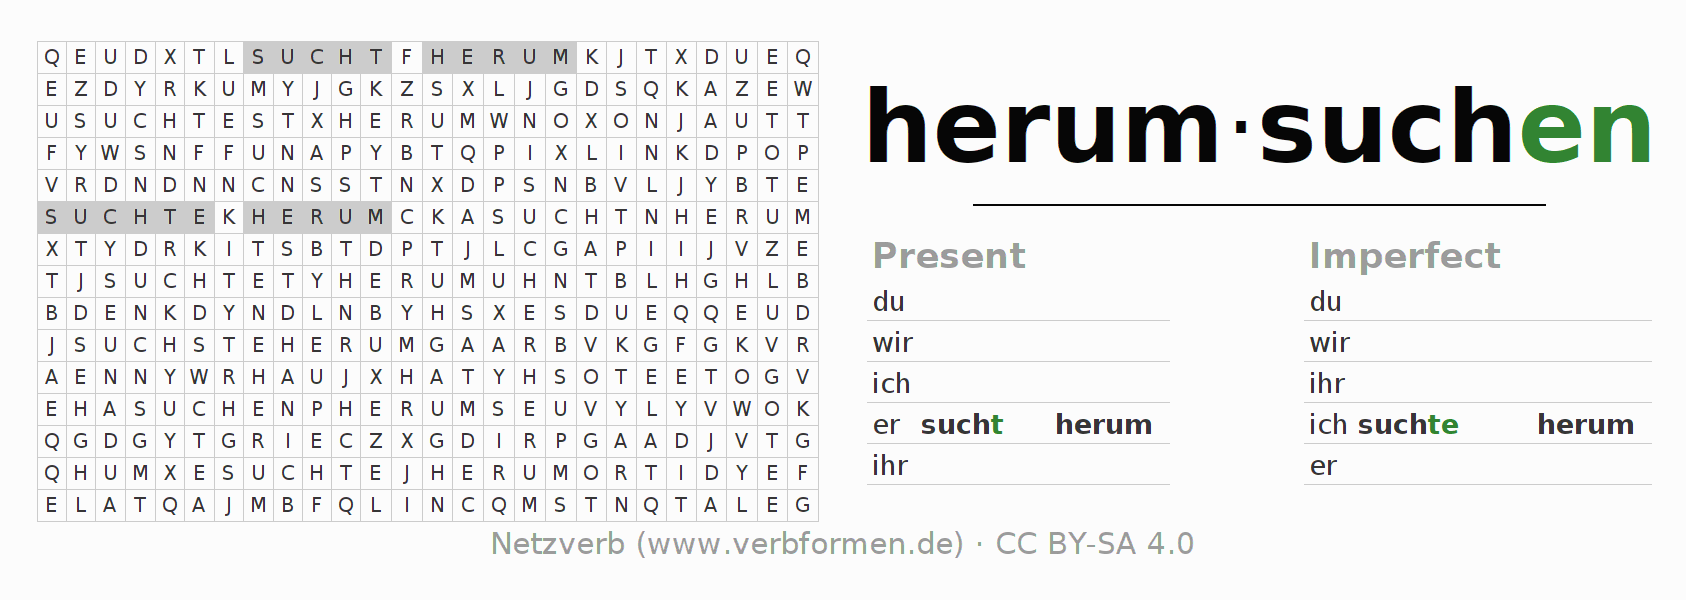 Word search puzzle for the conjugation of the verb herumsuchen